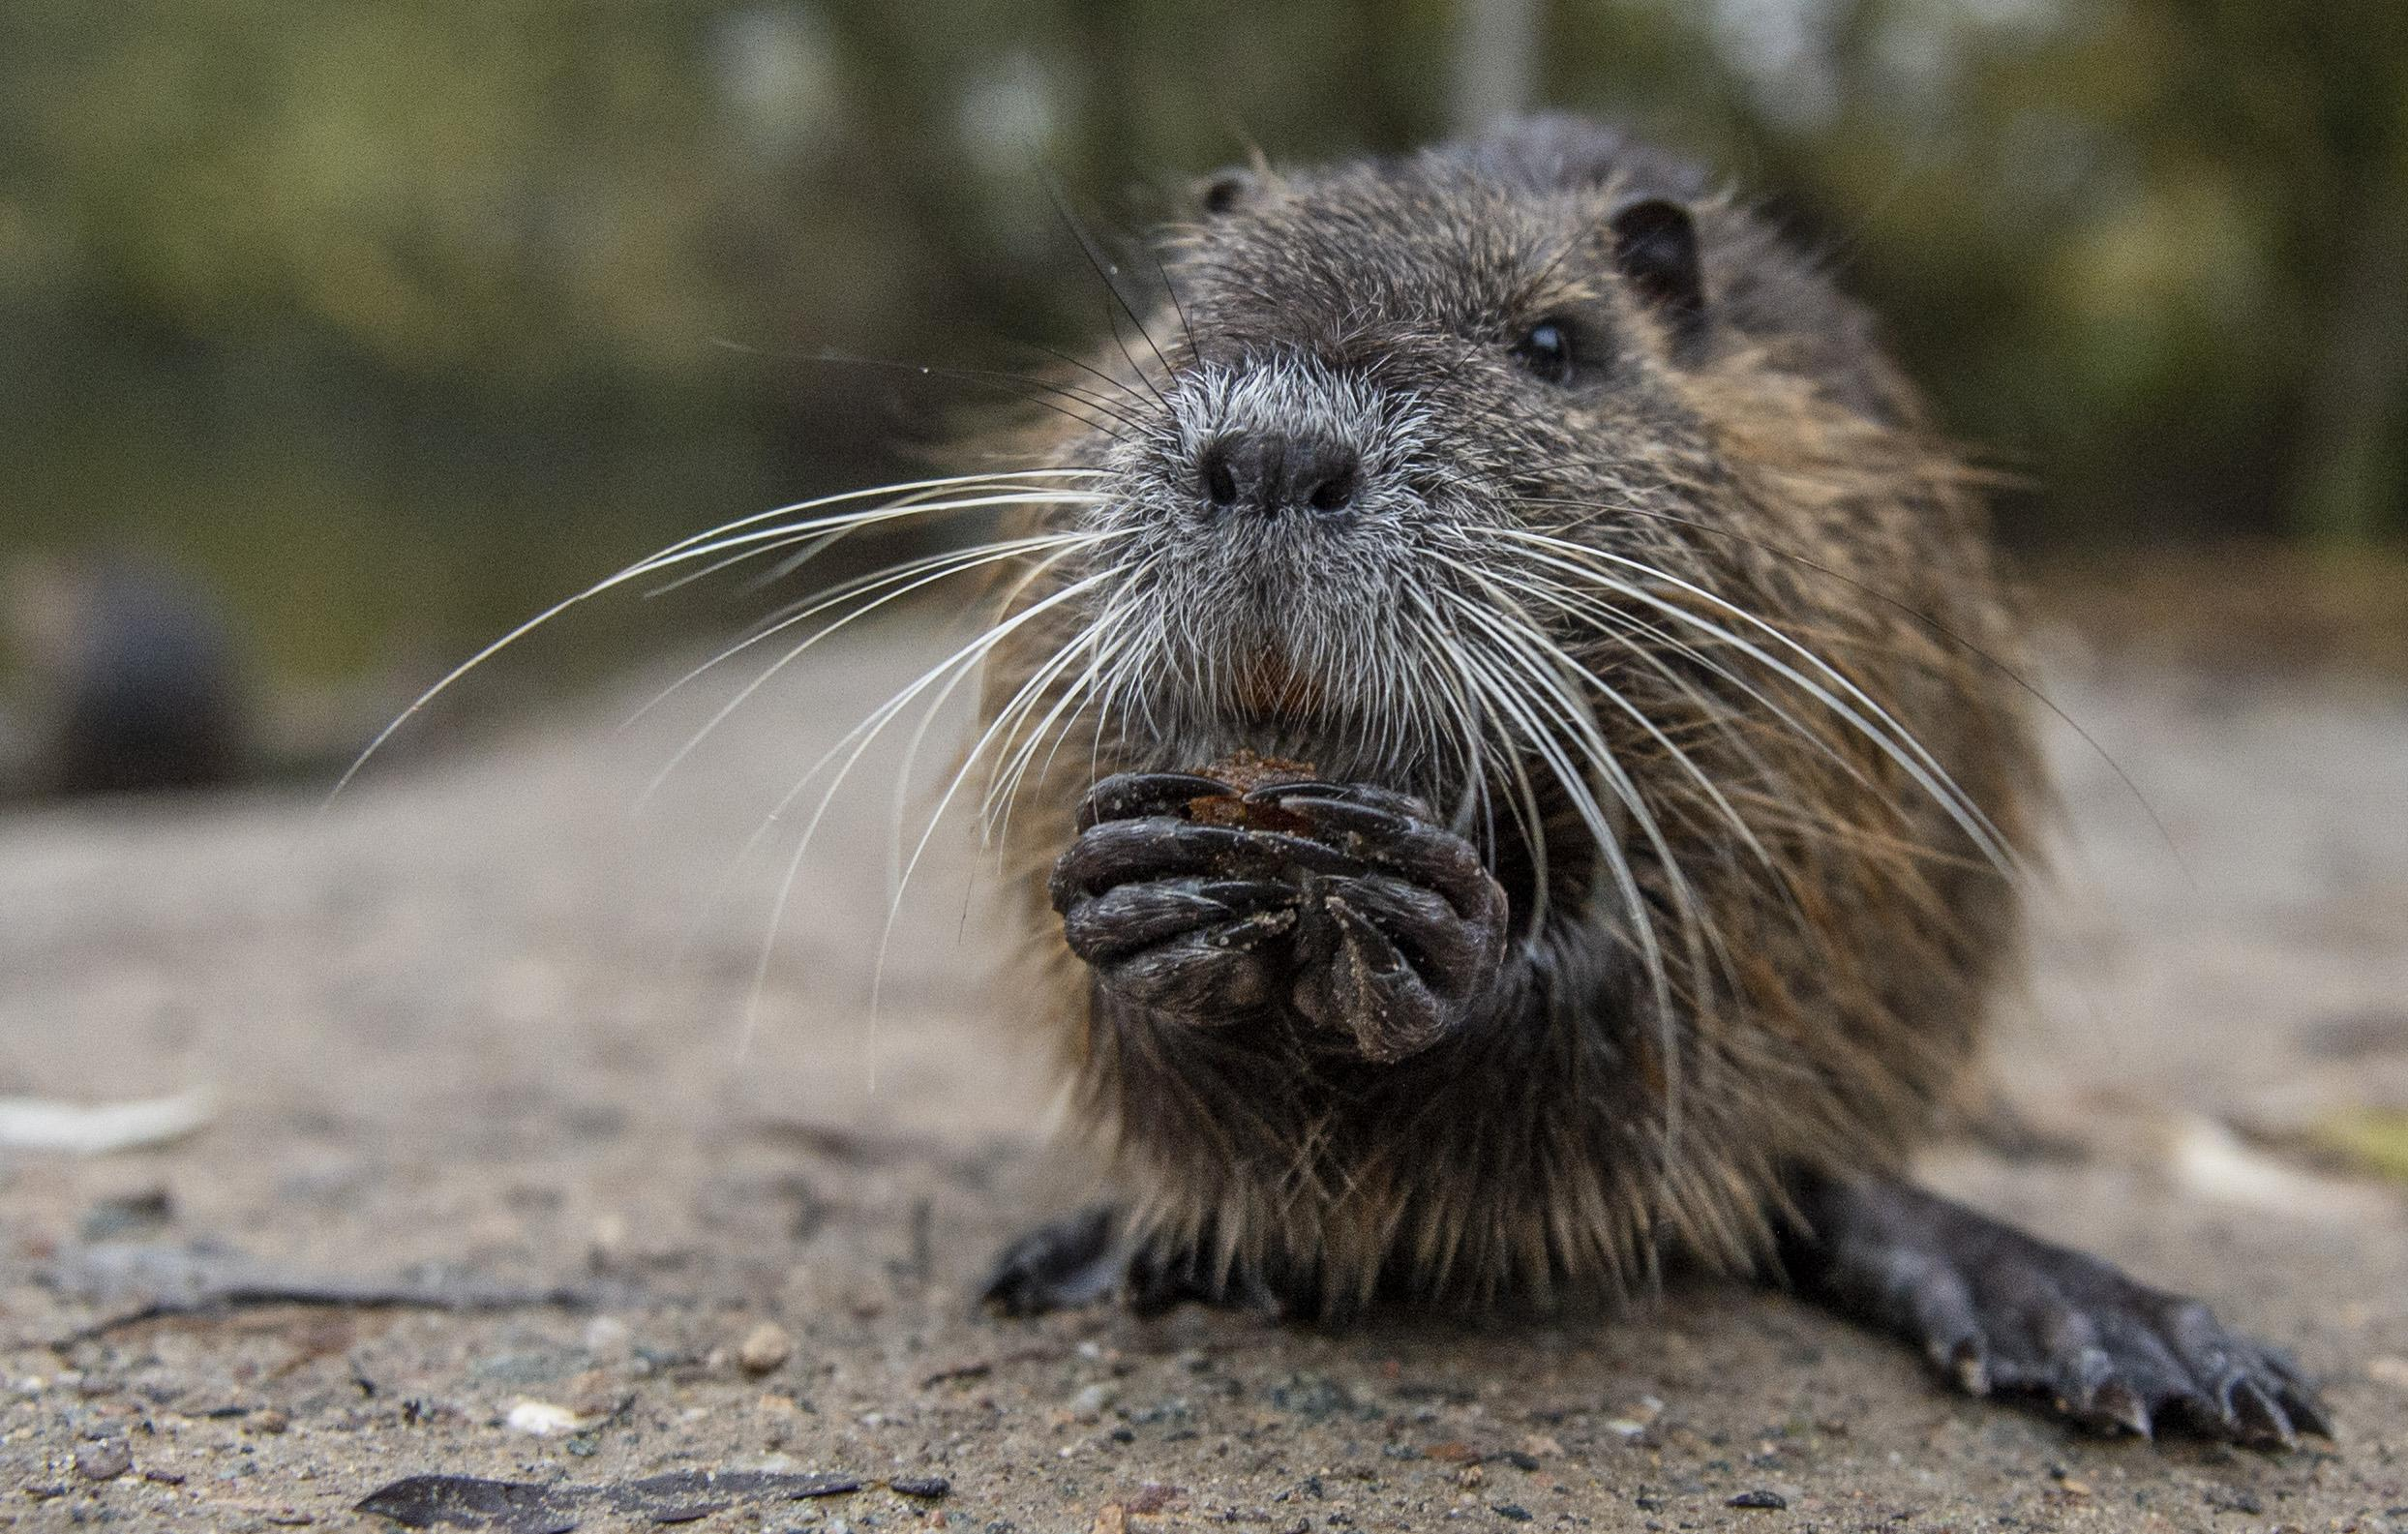 Coronavirus: Aggressive rodents looking for new food ...